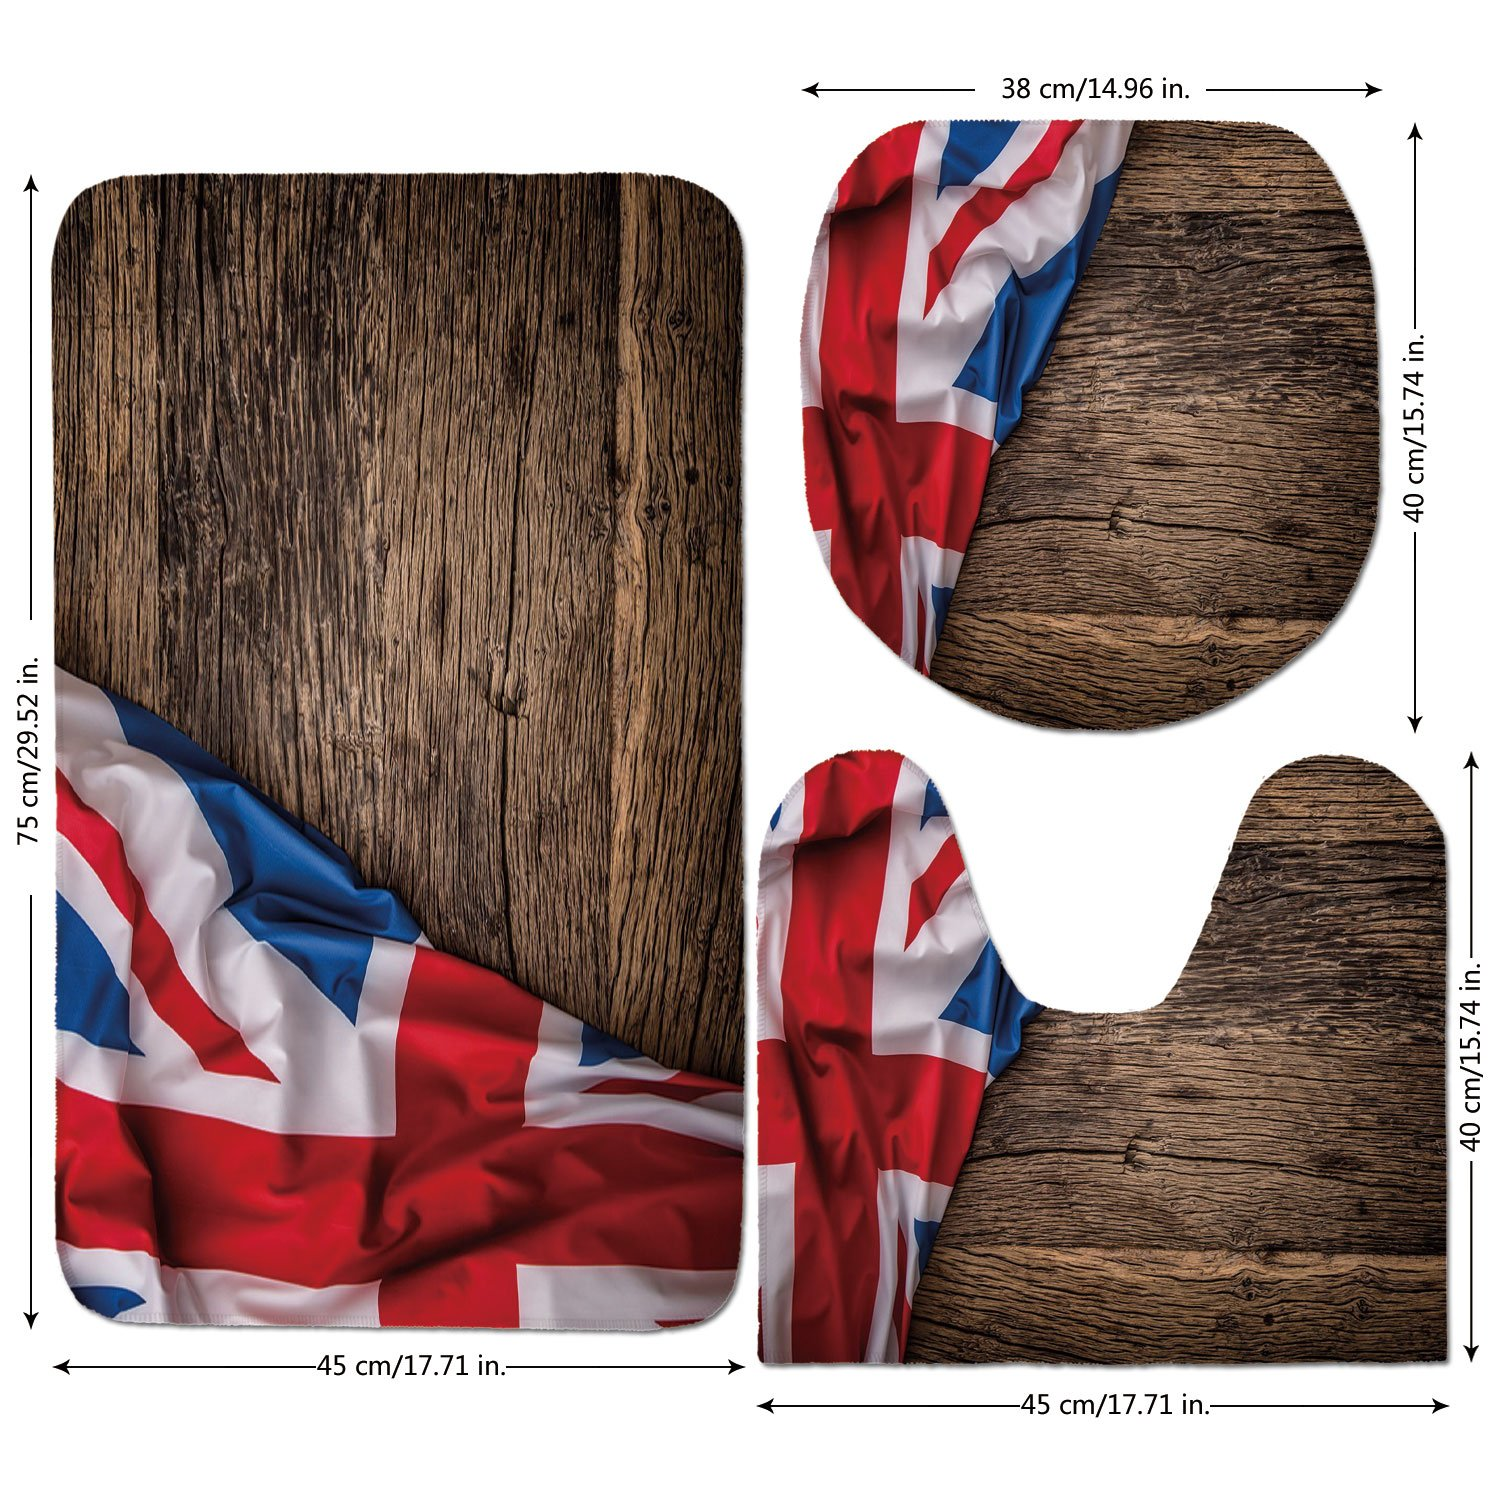 3 Piece Bathroom Mat Set,Union Jack,Flag of United Kingdom on Old Oak Wooden Board English Nation Country Britain,Multicolor,Bath Mat,Bathroom Carpet Rug,Non-Slip